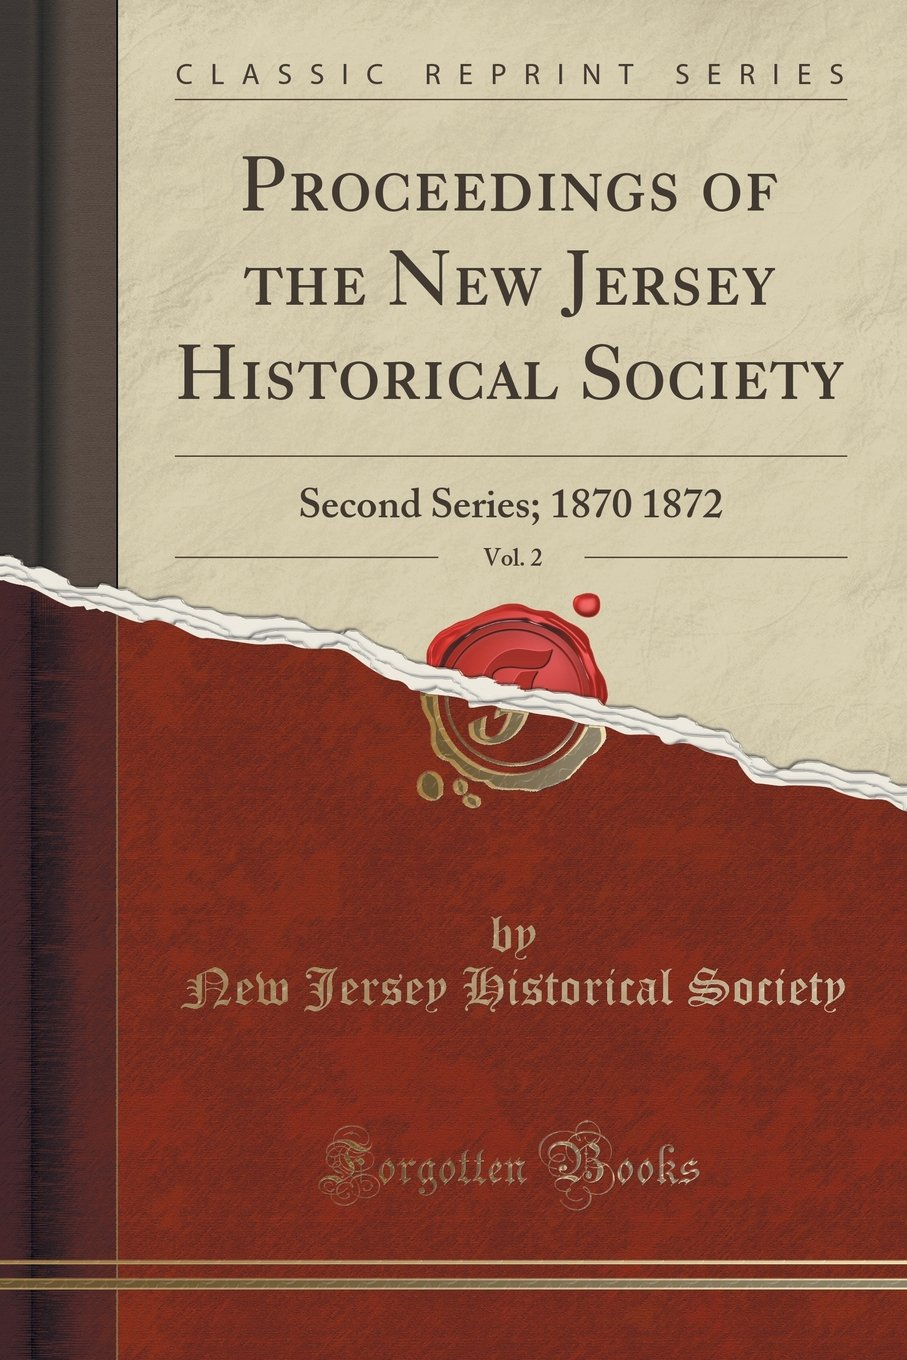 Proceedings of the New Jersey Historical Society, Vol. 2: Second Series; 1870 1872 (Classic Reprint) PDF ePub ebook